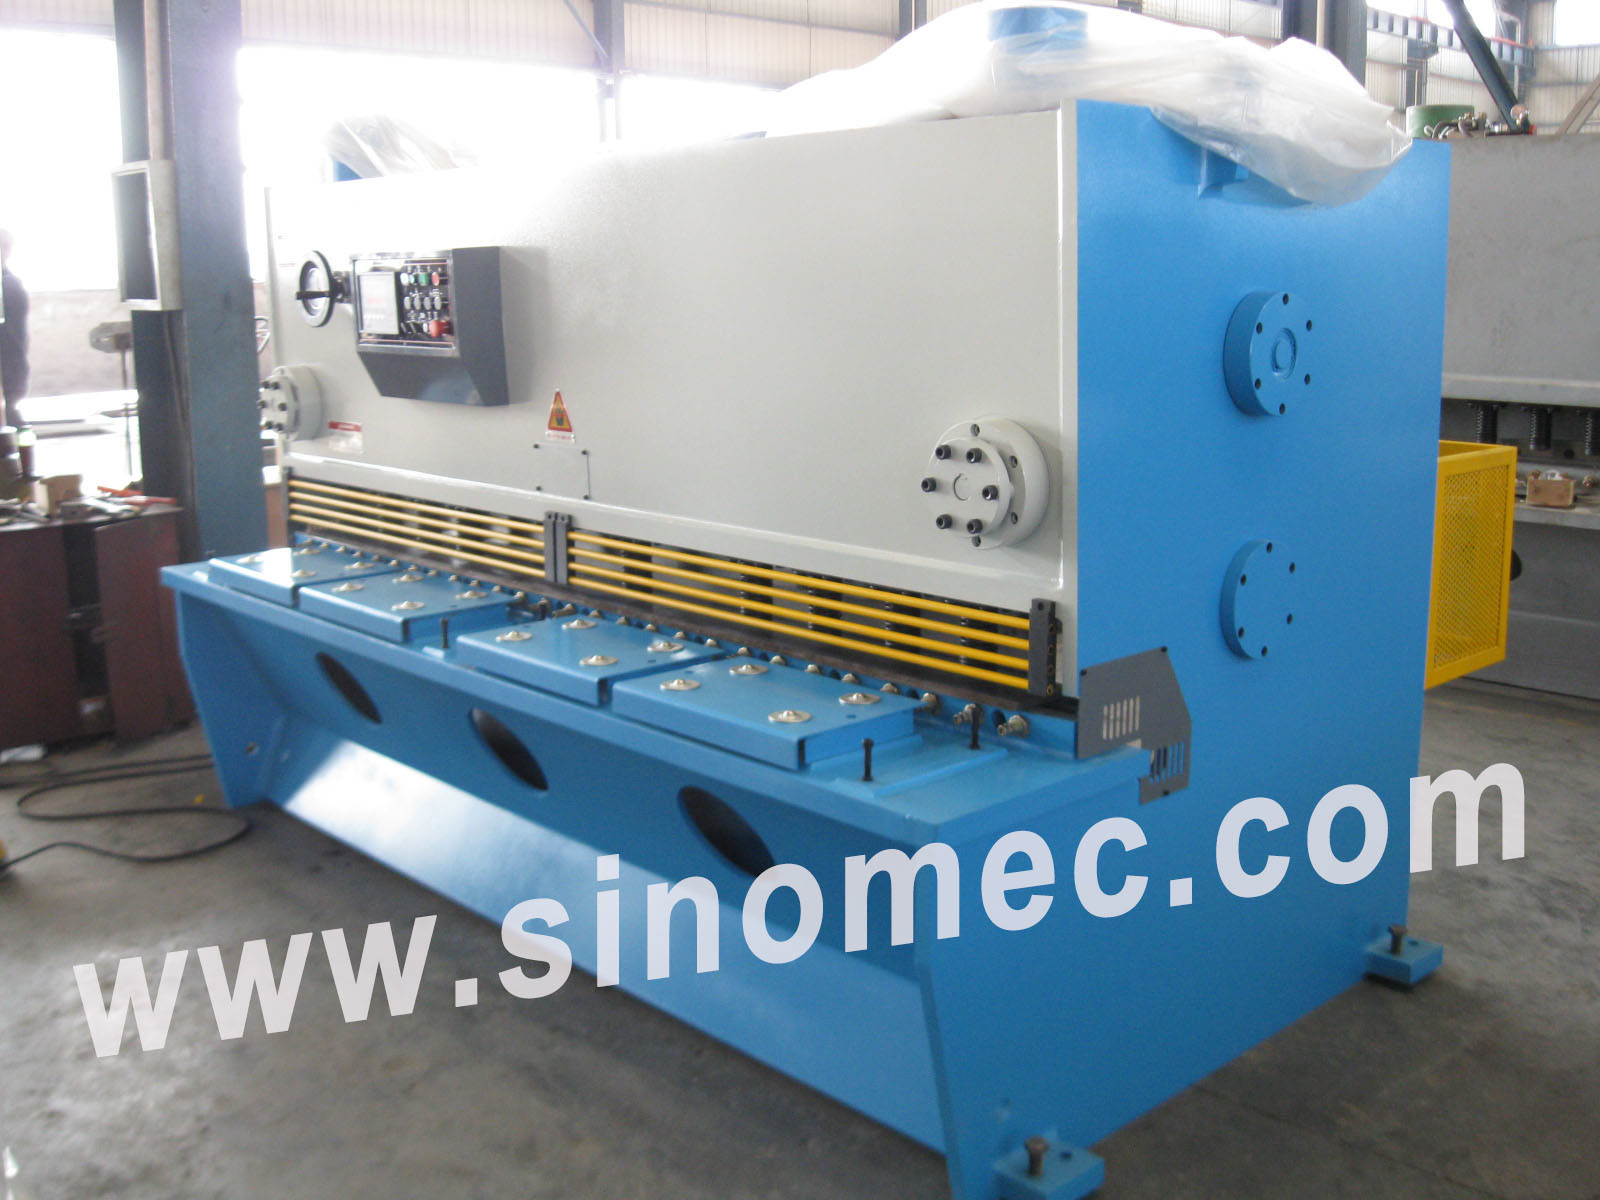 Guillotine Shear Machine / Cutting Machine / Hydraulic Shear Machine QC11y-8X3200